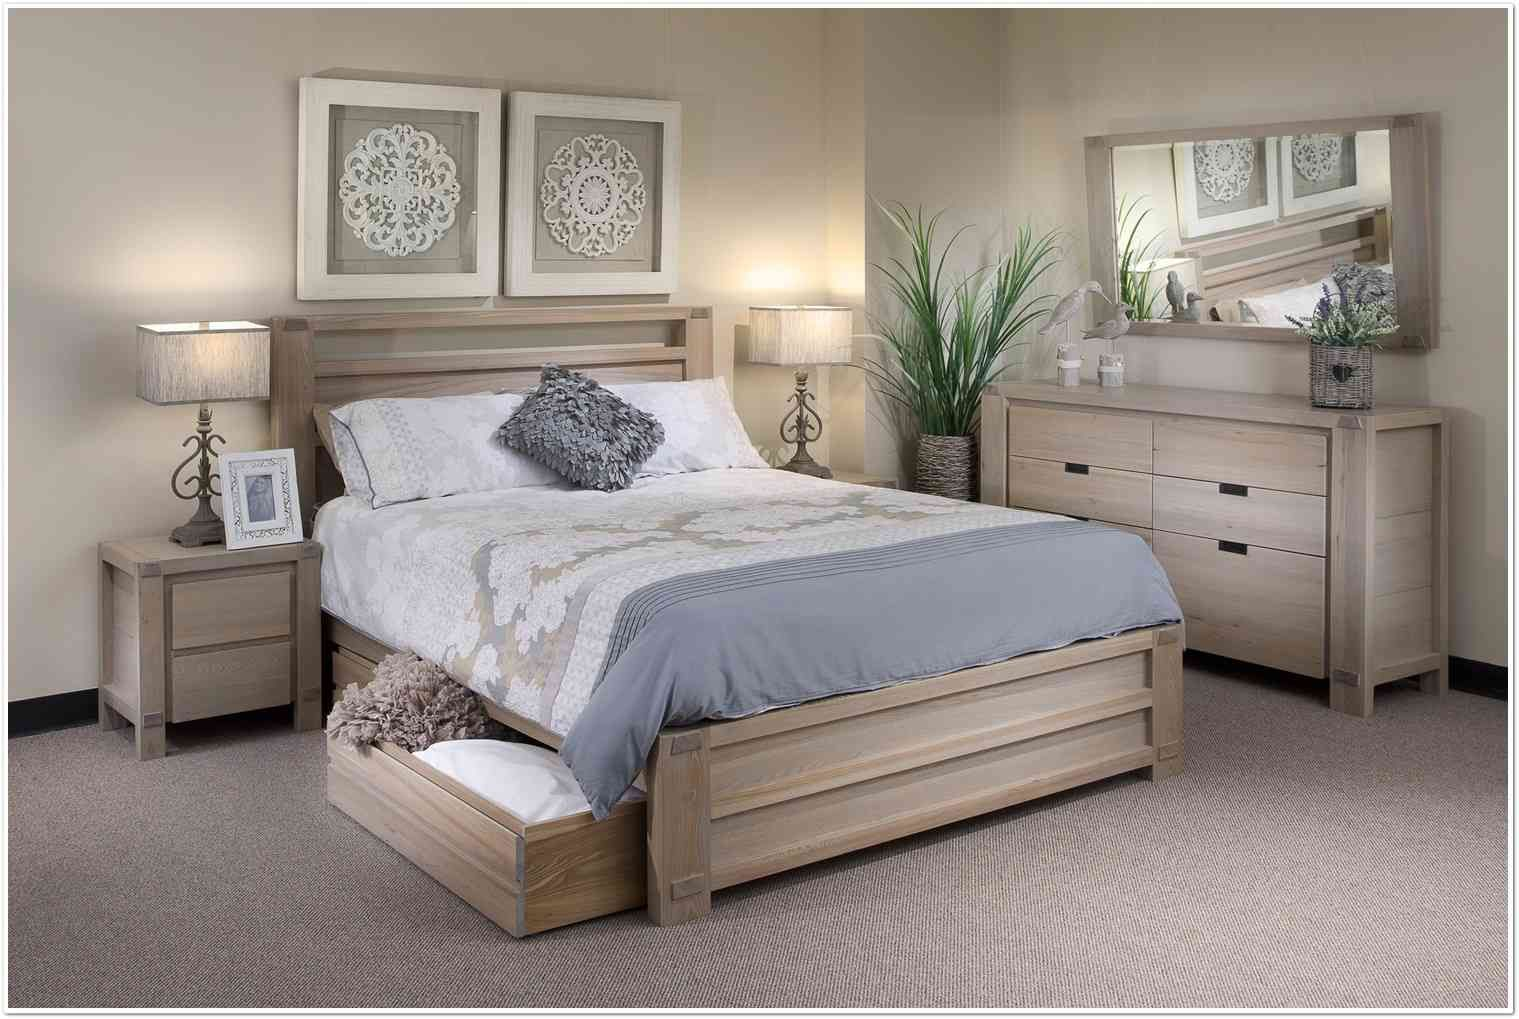 Furniture Package Deals Bedroom Furniture Package Deals Sydney Furniture Packages